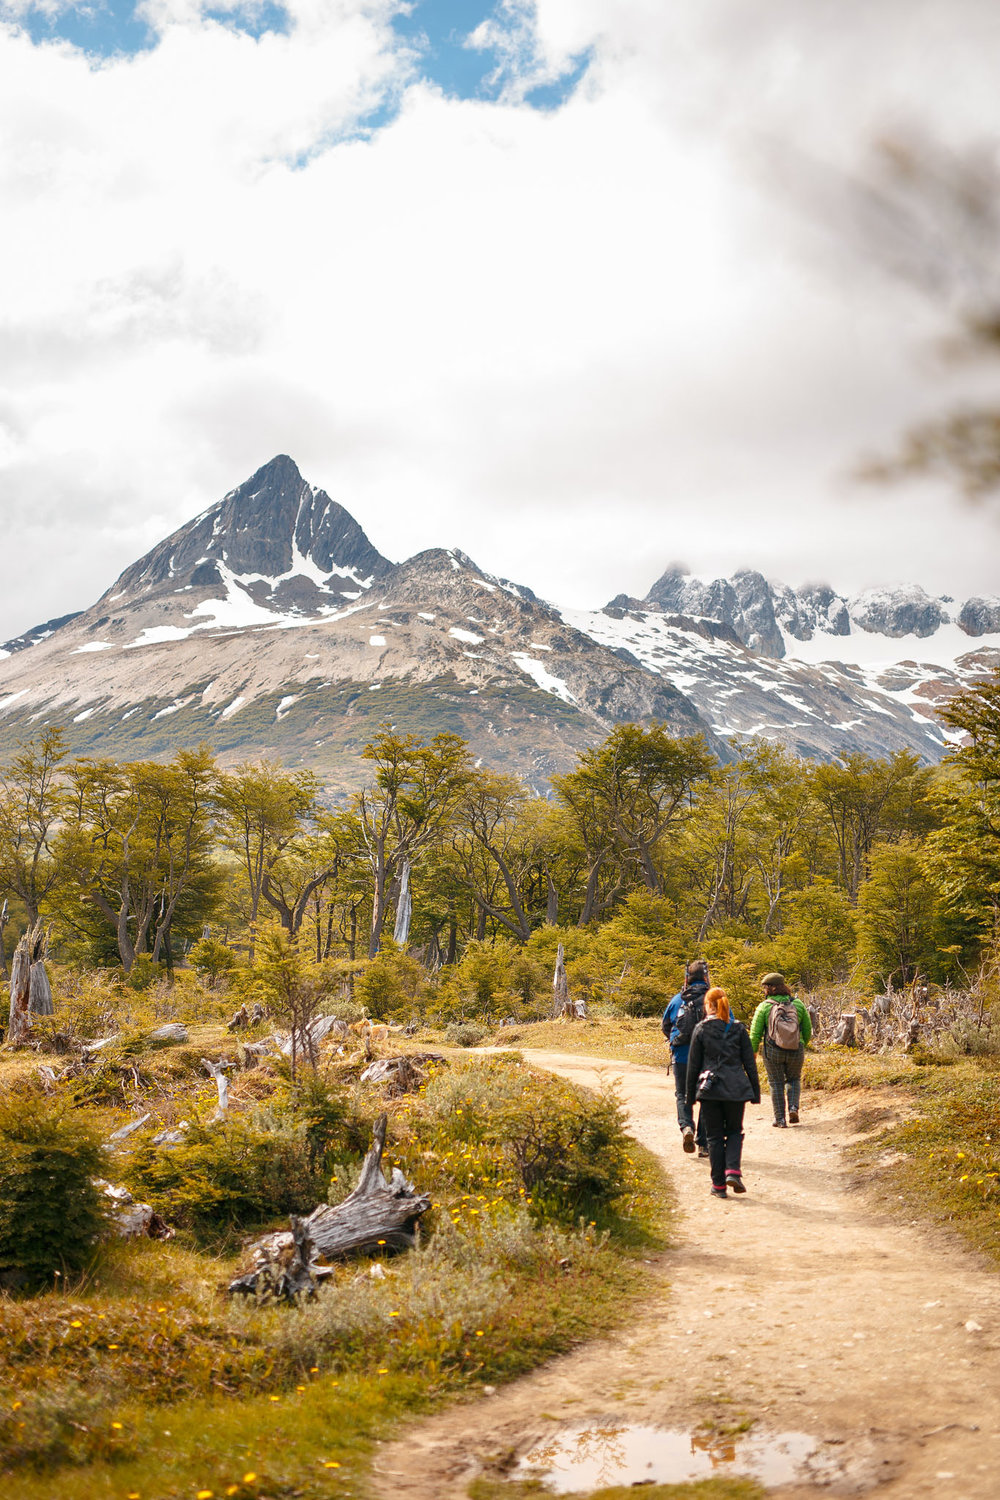 Wedding_Travellers_Ushuaia_Overlanding_fin_del_mundo-laguna-esmeralda-mountains-snow-forest-path-people